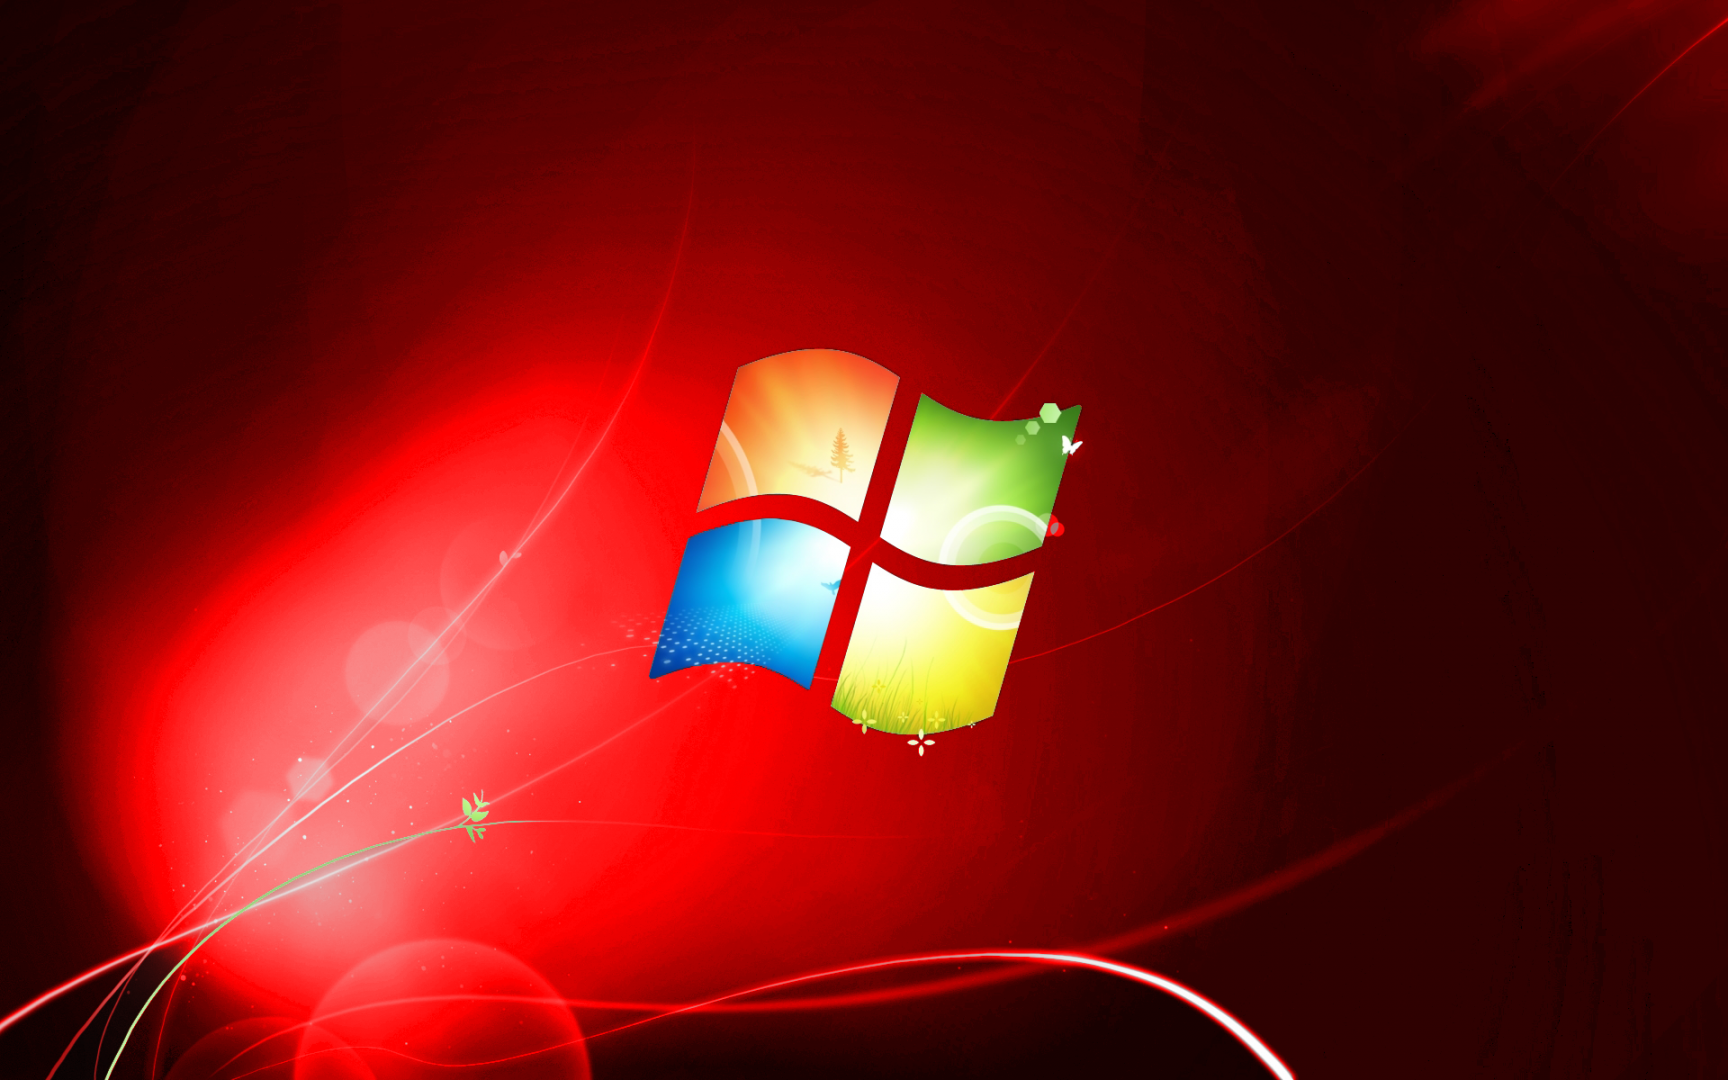 Attached Image: Windows_7_RED_Wallpaper_by_DaBestFox.png